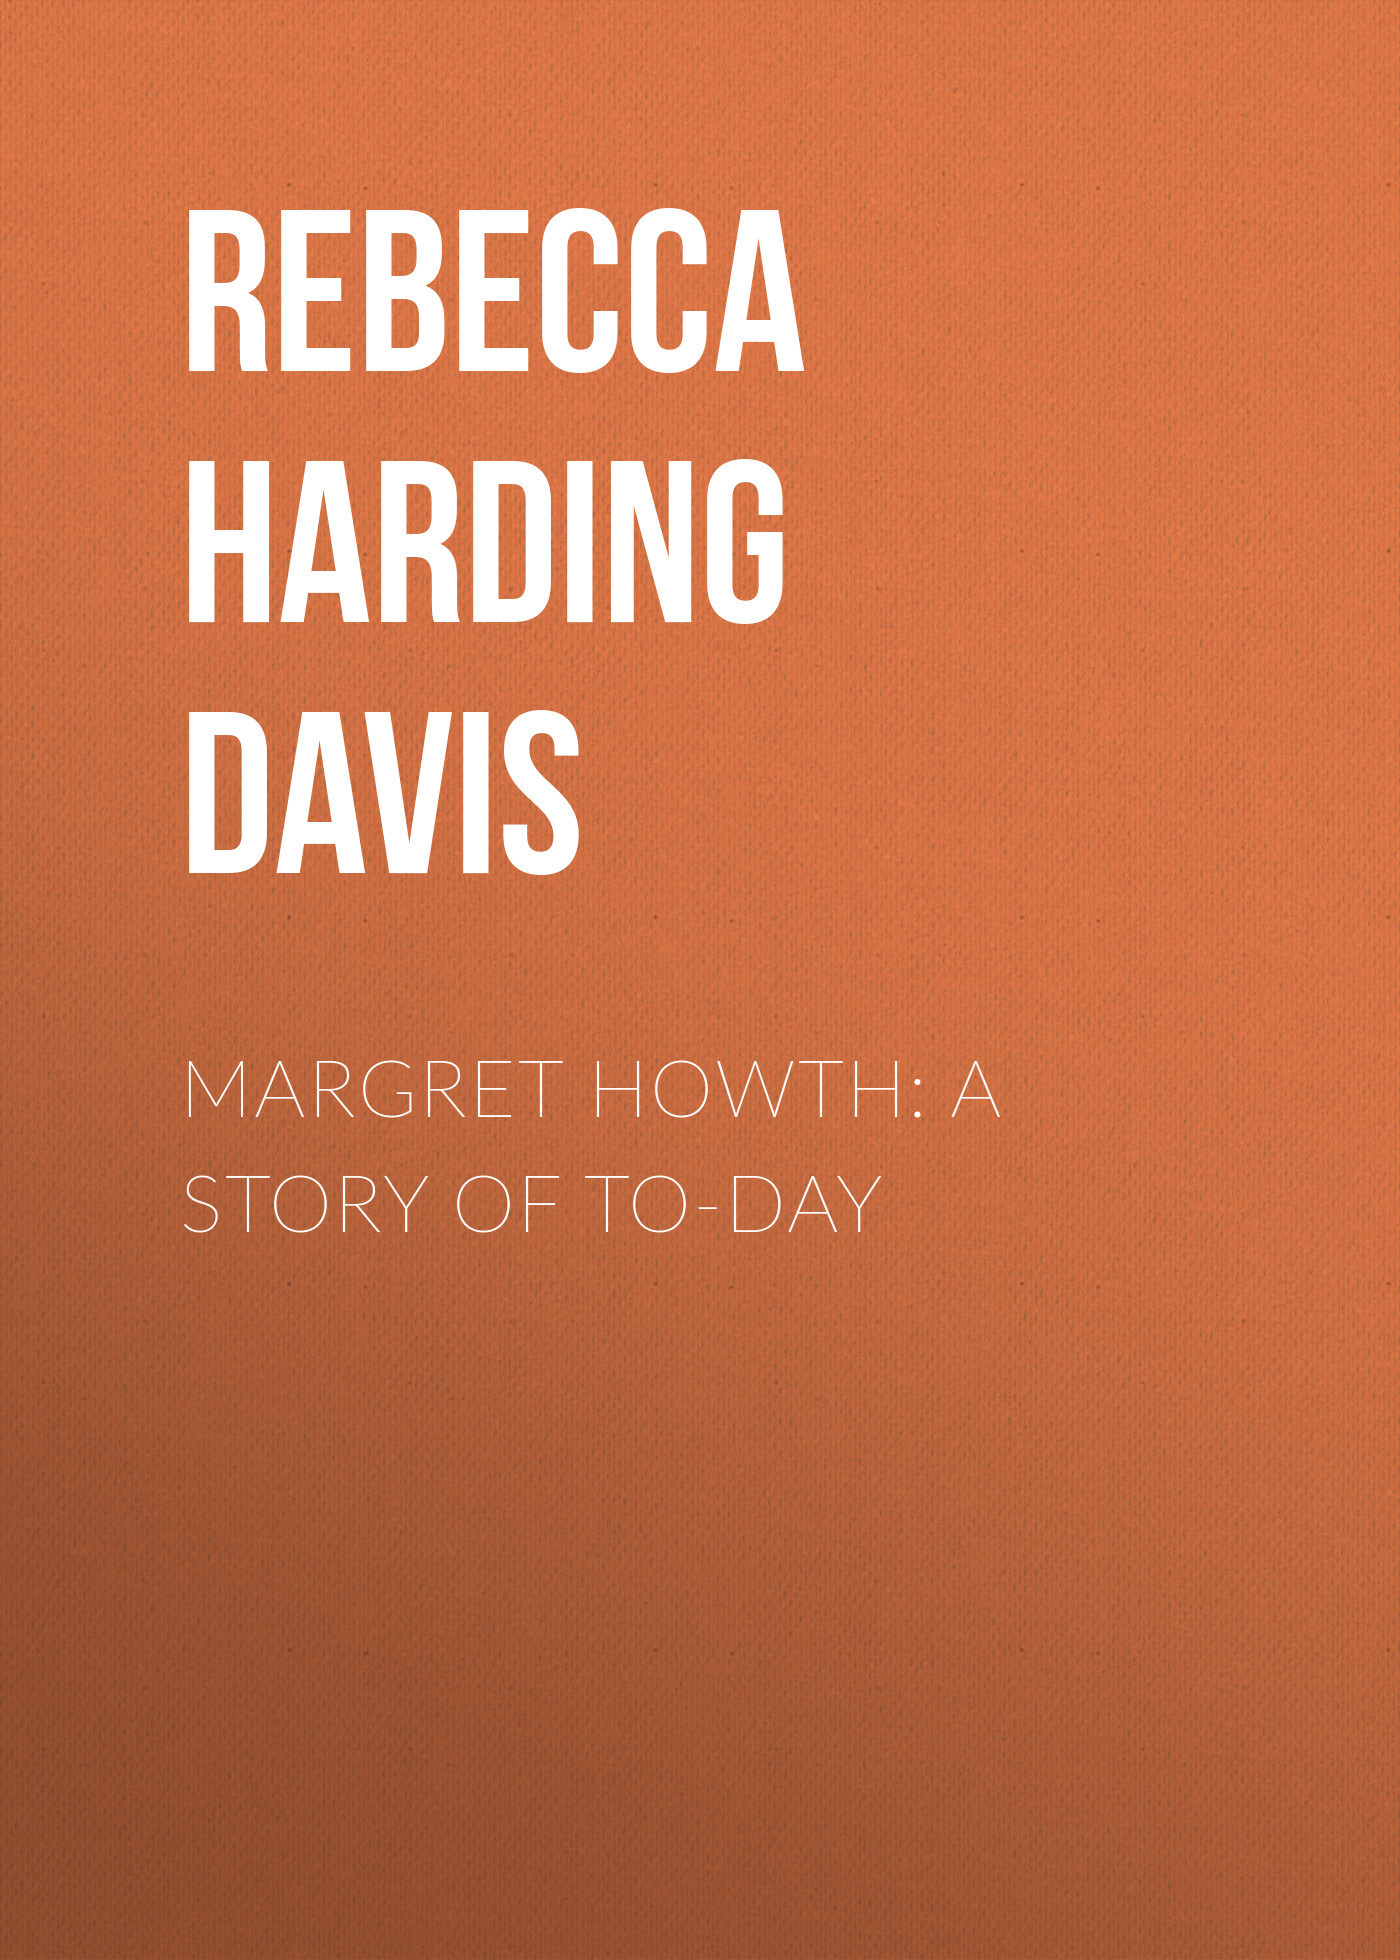 Rebecca Harding Davis Margret Howth: A Story of To-day rebecca harding davis life in the iron mills or the korl woman